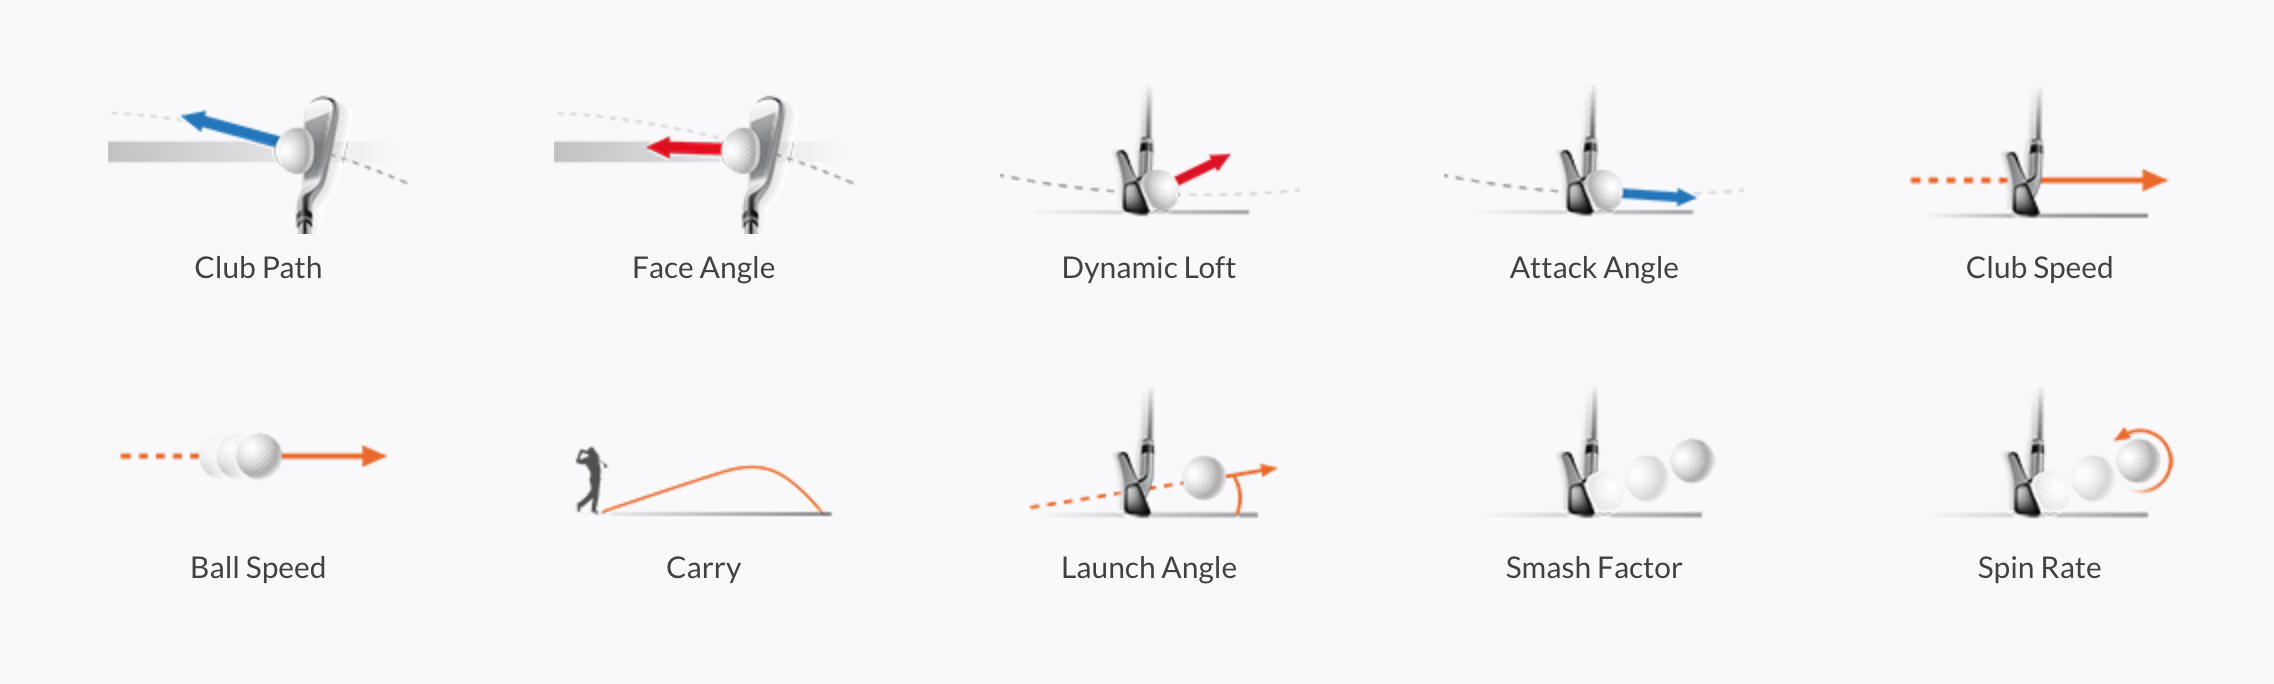 Lie Launch Face angles image for Trackman